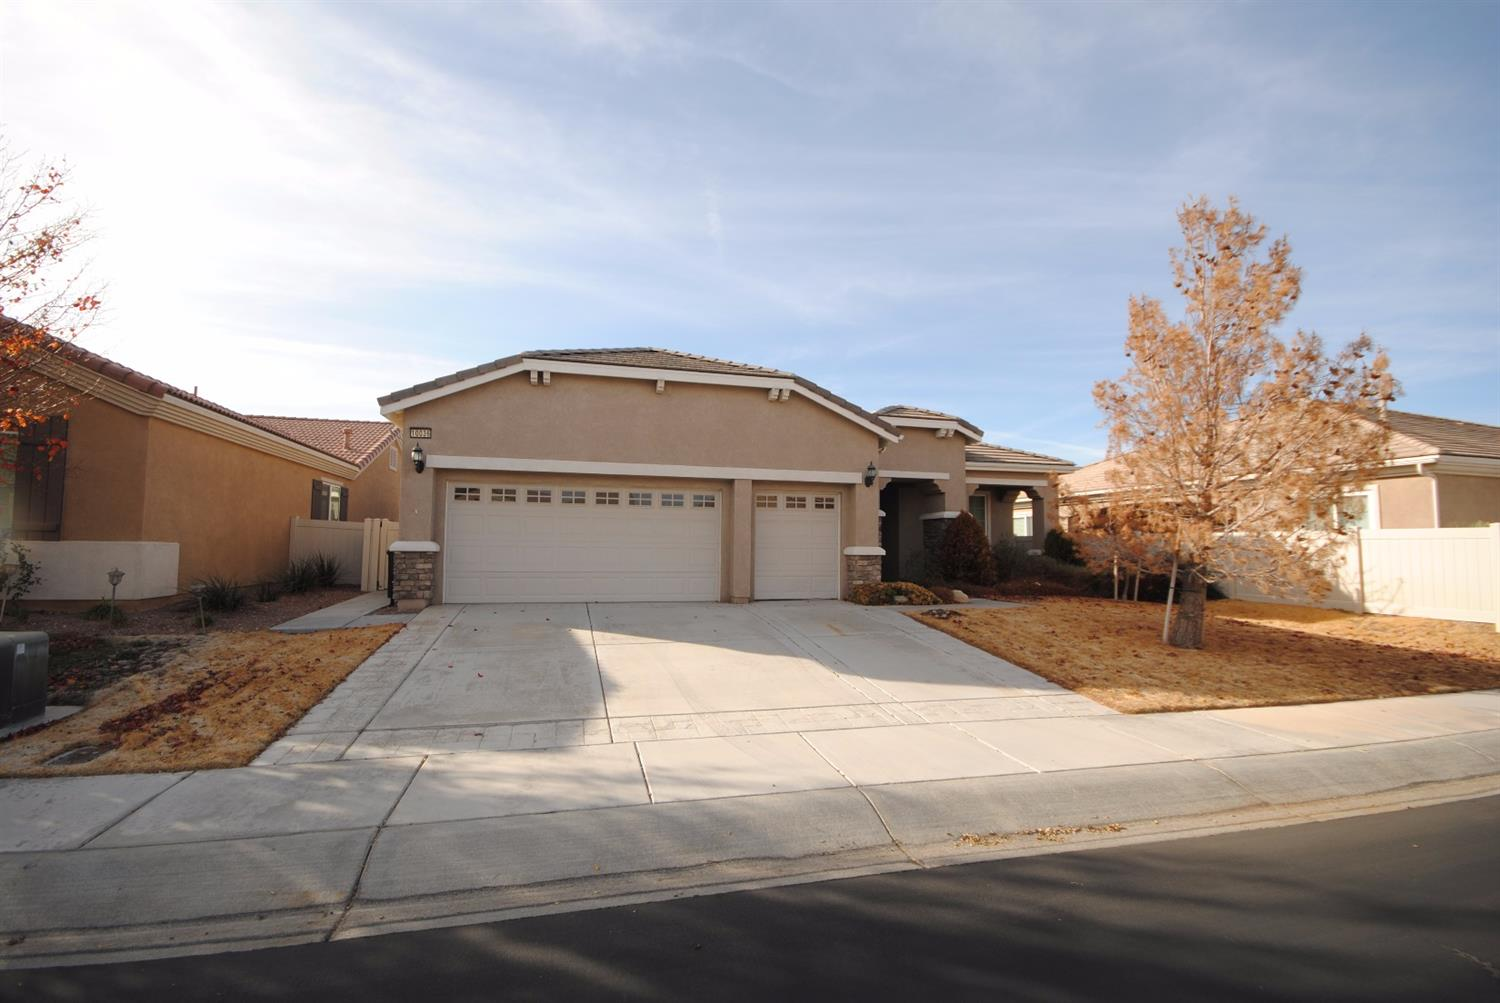 All homes for sale 55places 10036 wilmington lane apple valley ca 92308 malvernweather Choice Image